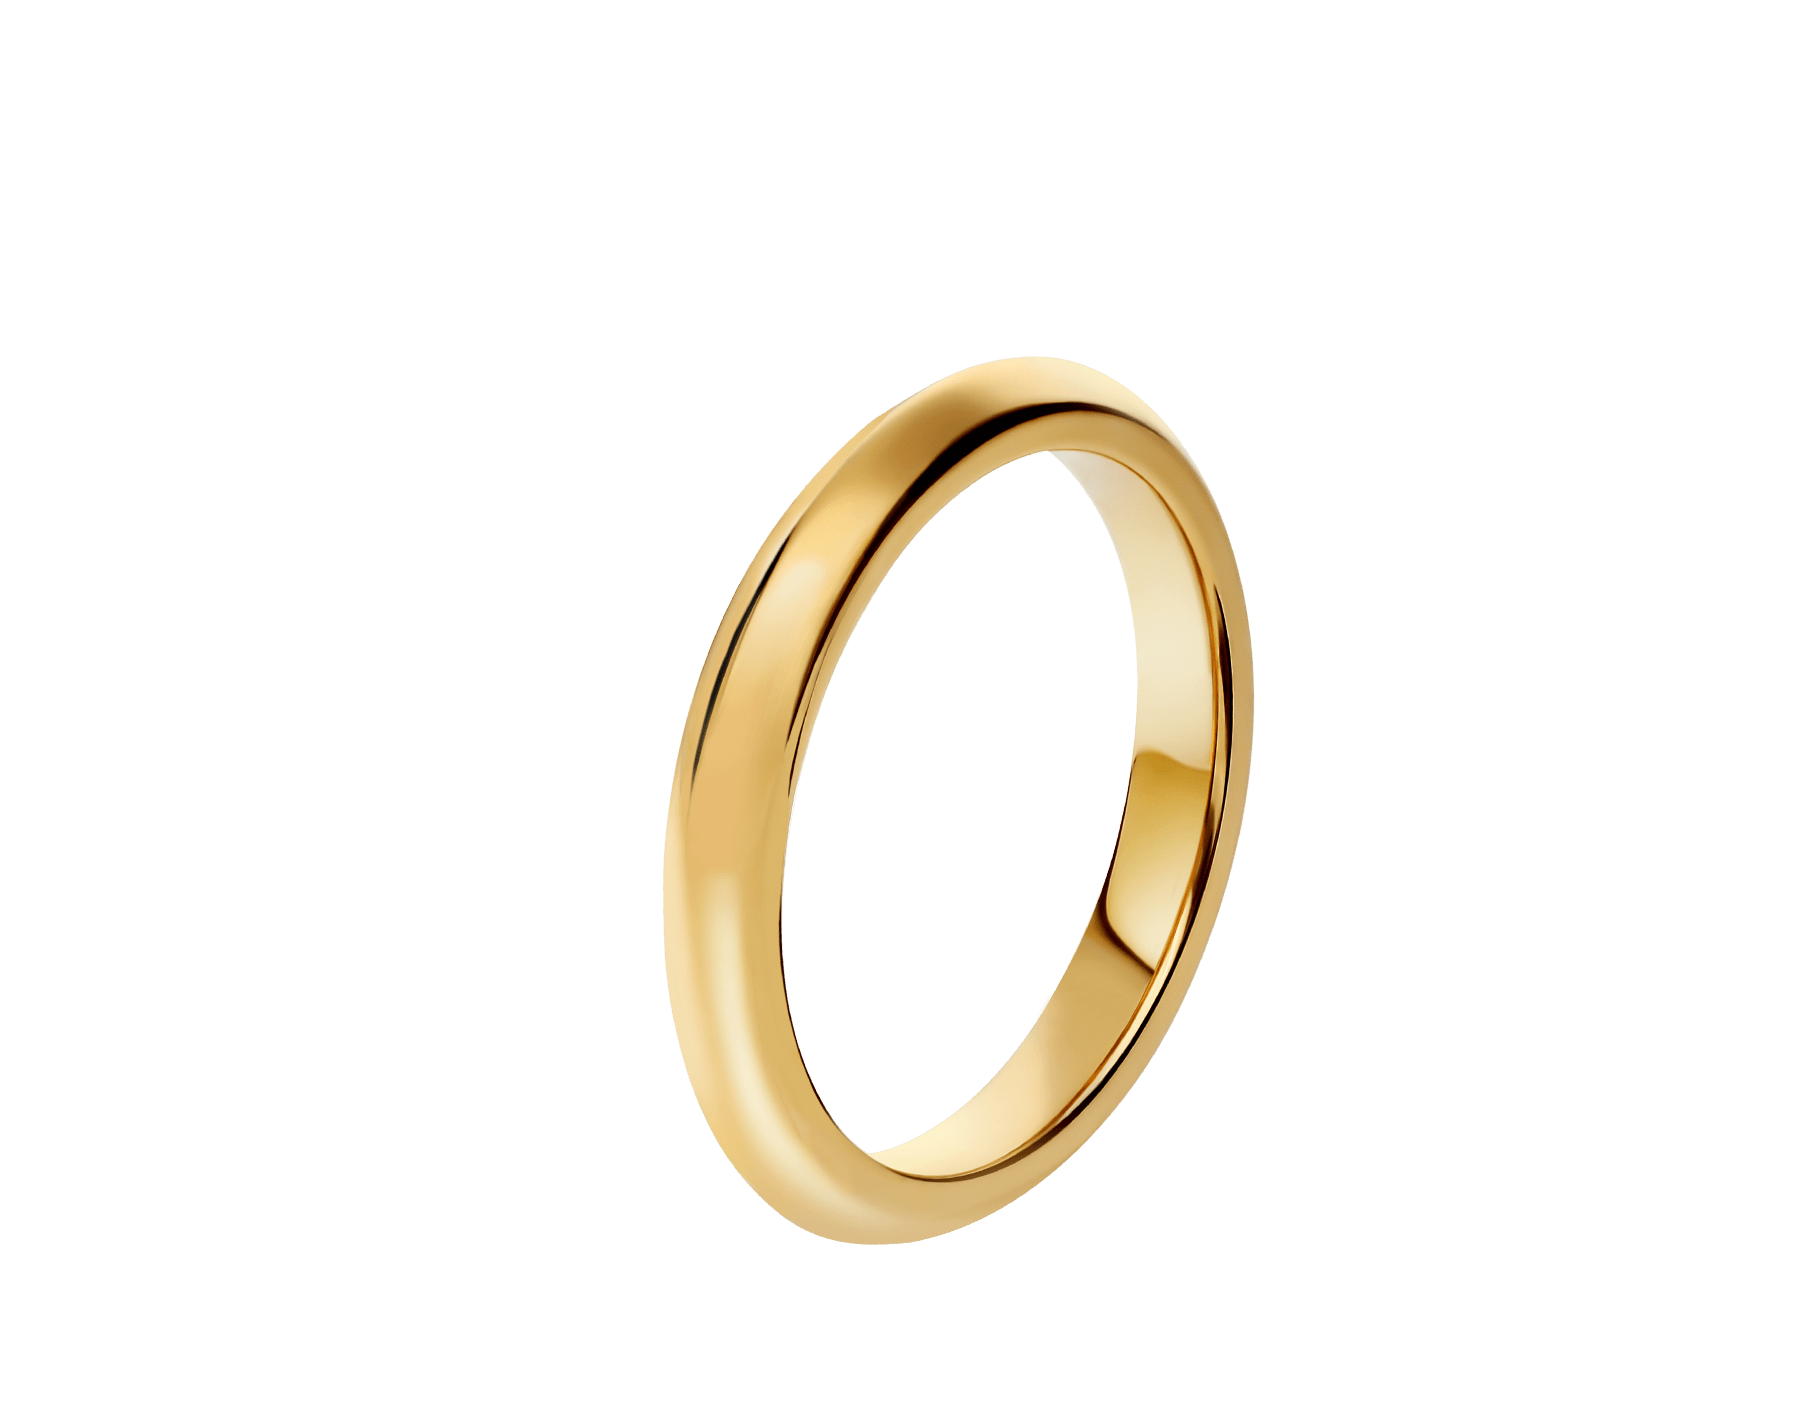 Fedi Wedding Band in 18 kt yellow gold Fedi-4 image 1